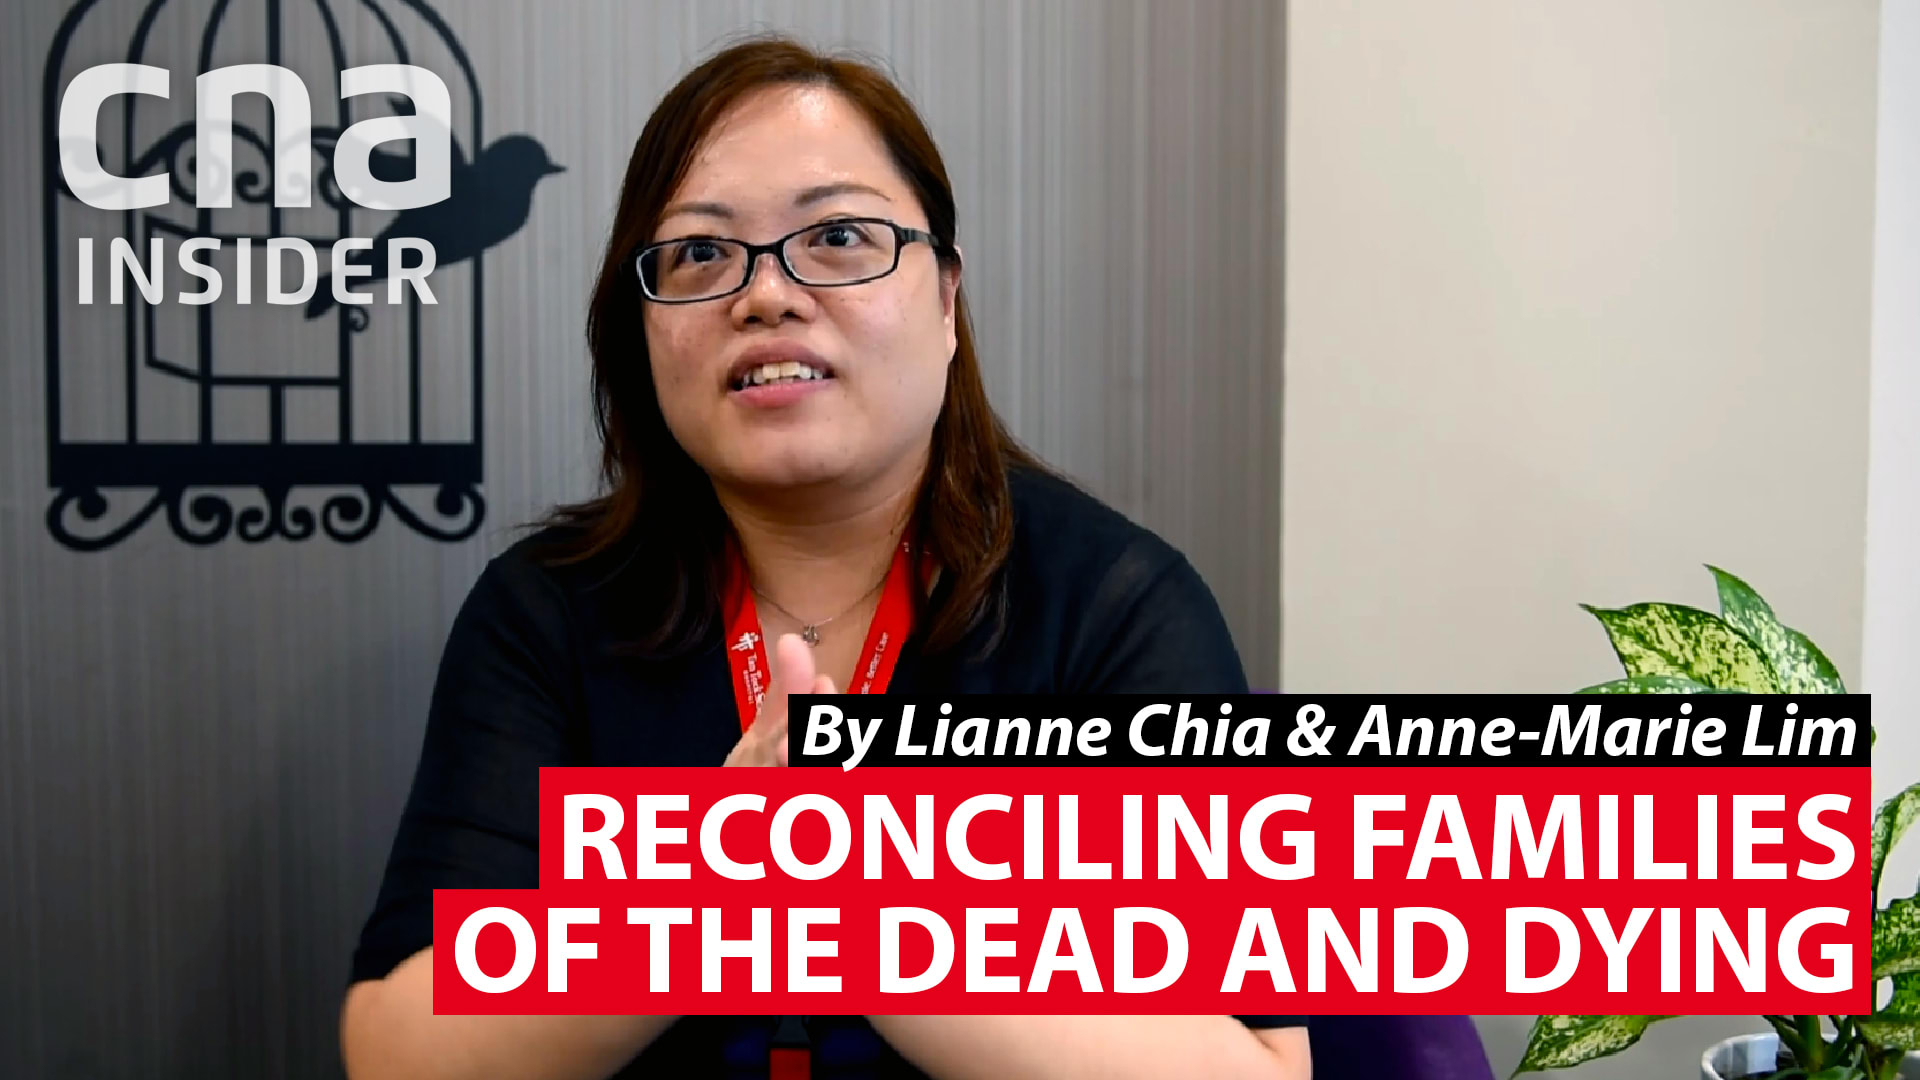 Reconciling families of the dead and dying